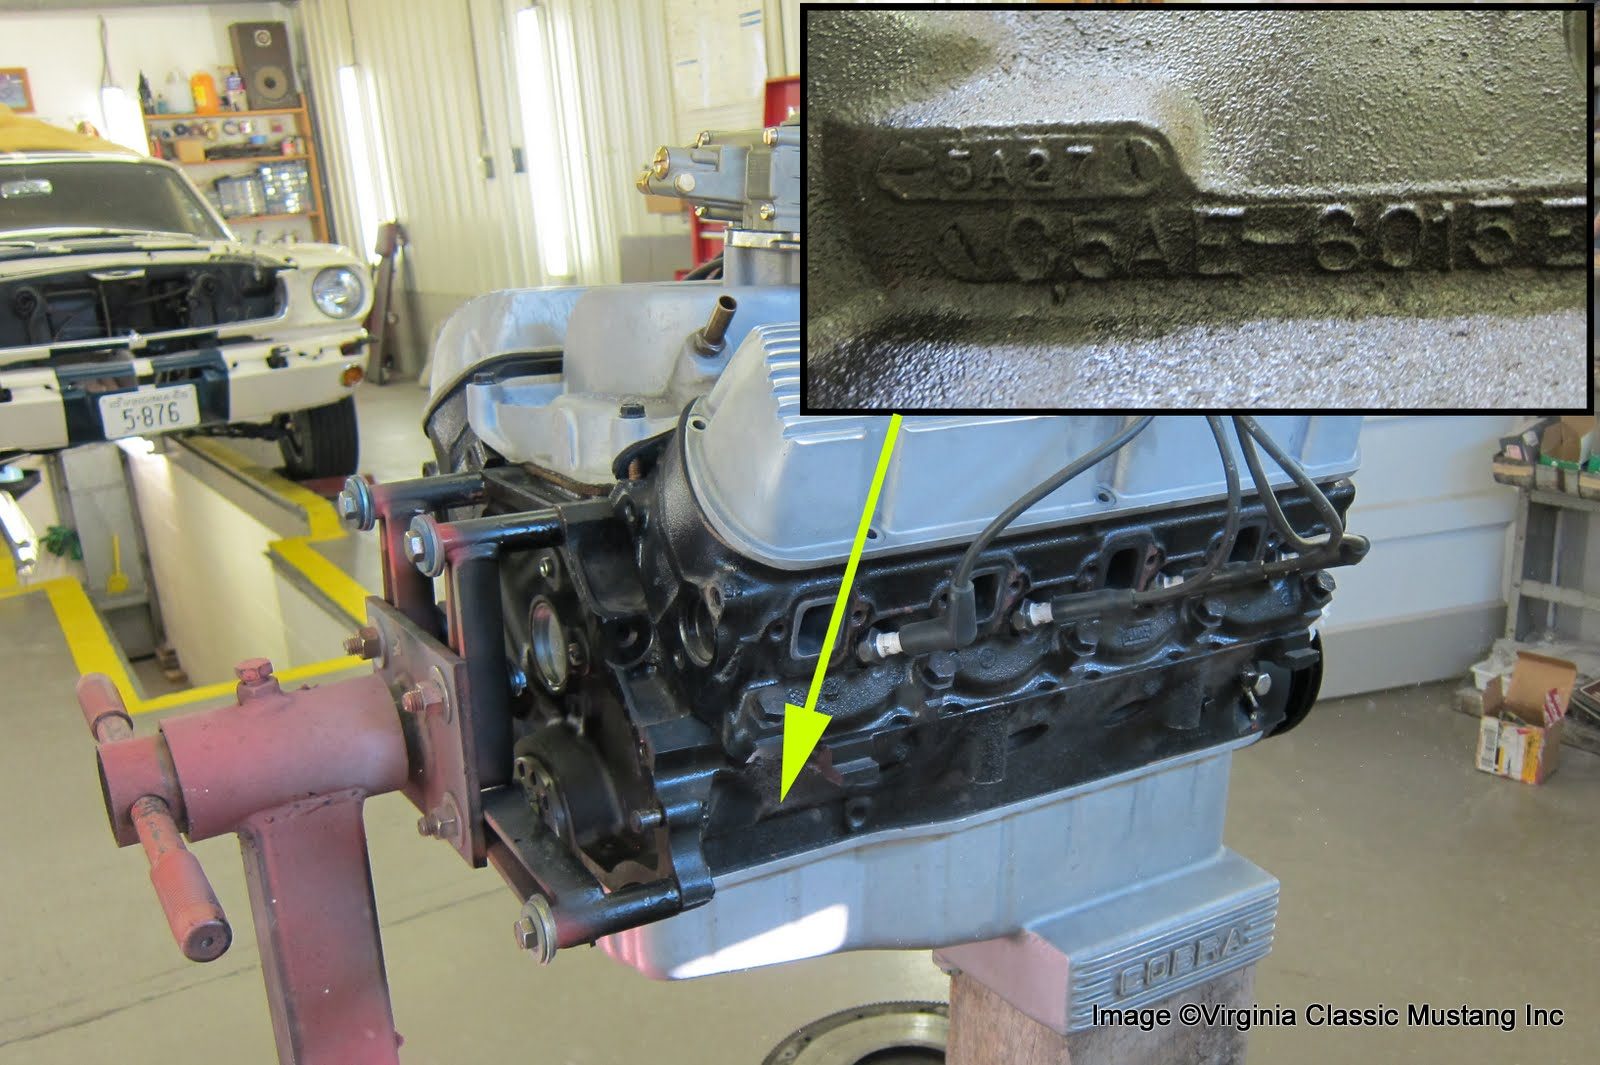 Virginia Classic Mustang Blog: Just the Details...289 Engine Date Codes